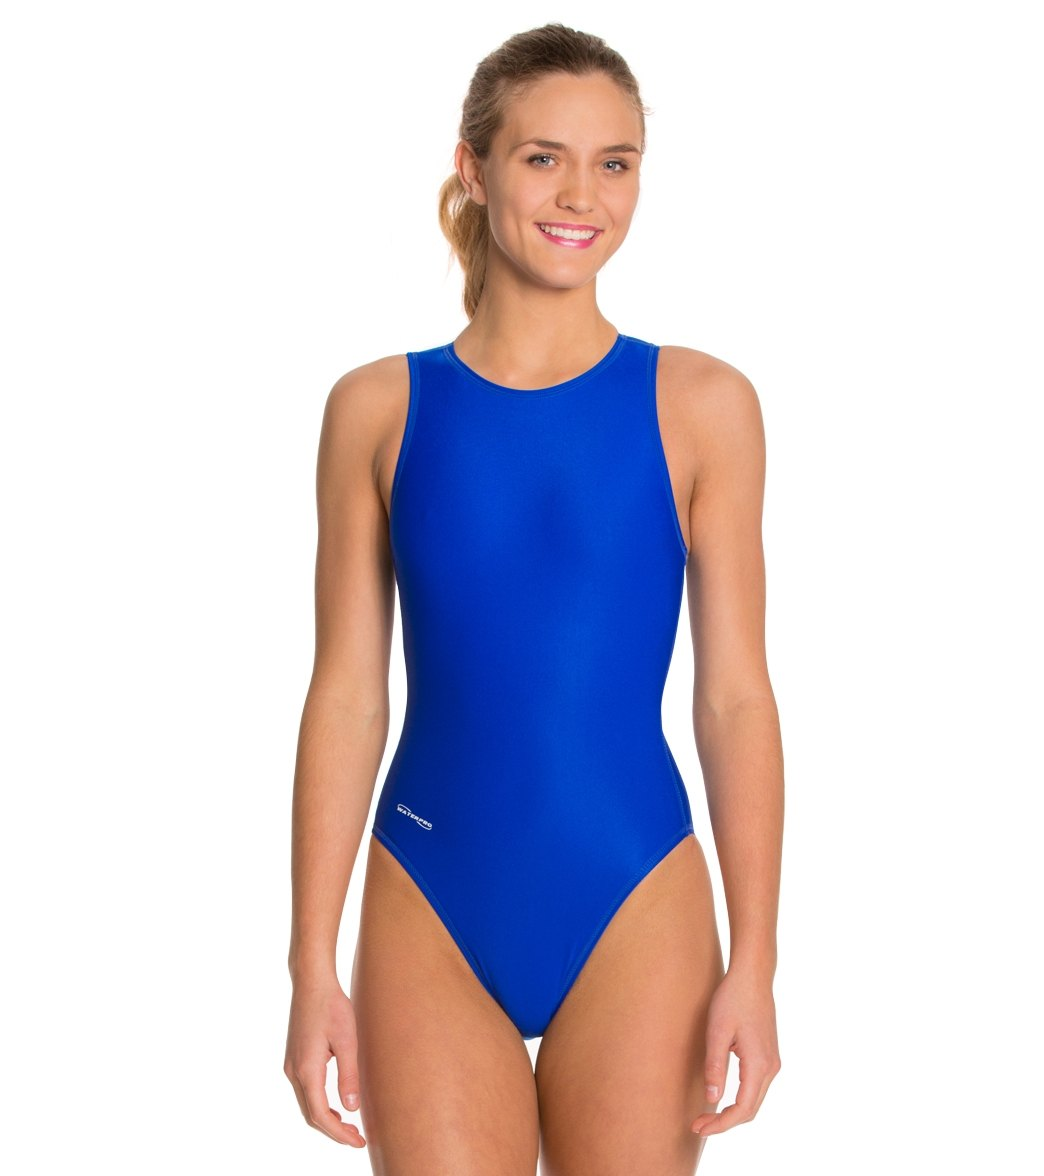 Waterpro Women s Water Polo One Piece Swimsuit at SwimOutlet.com d04849586